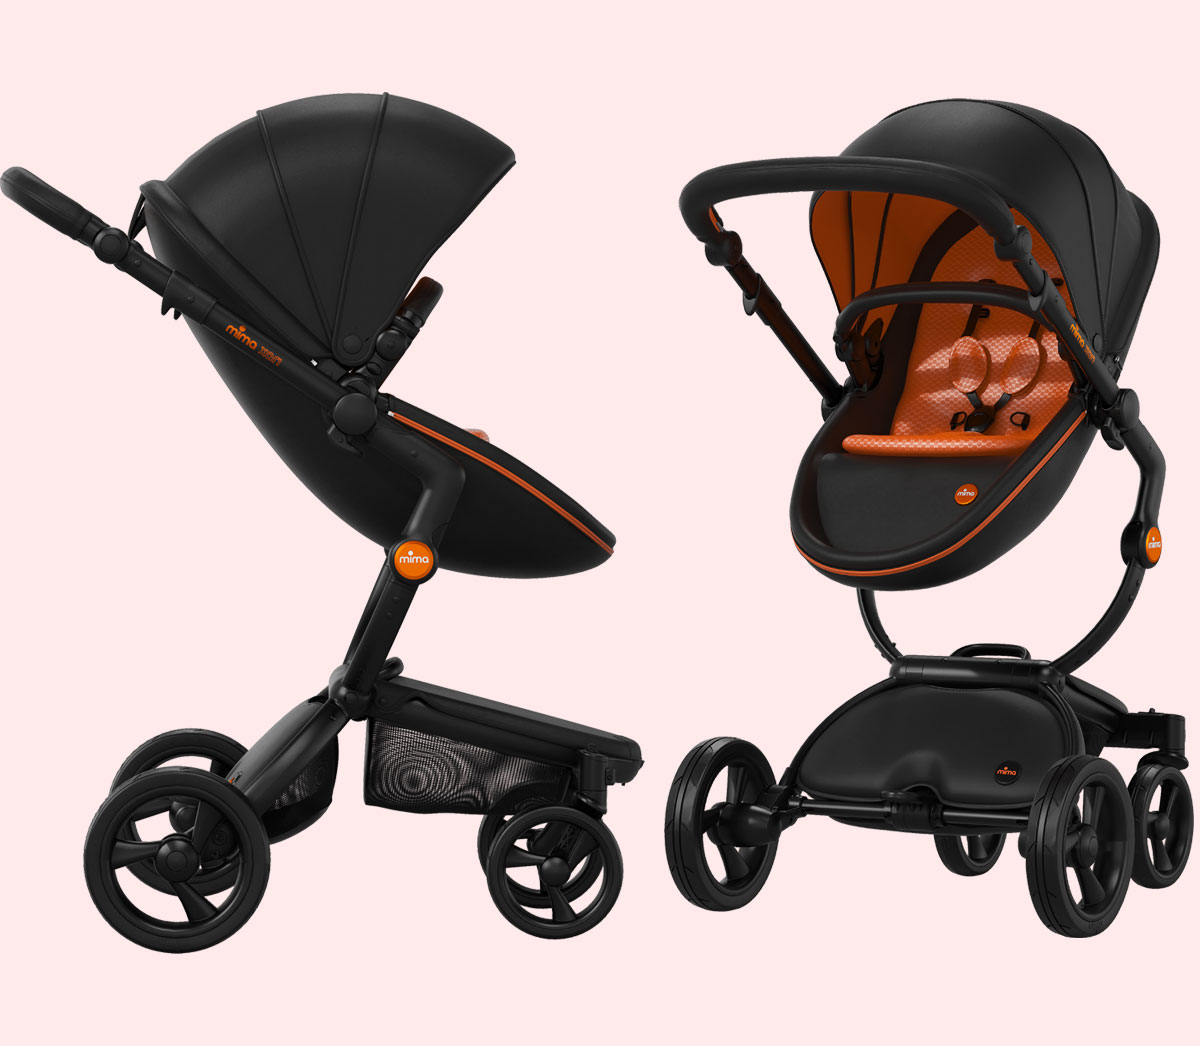 Mima Xari Stroller Harga Mima Kids Usa Shop Mima Xari Stroller Moon 2g High Chair